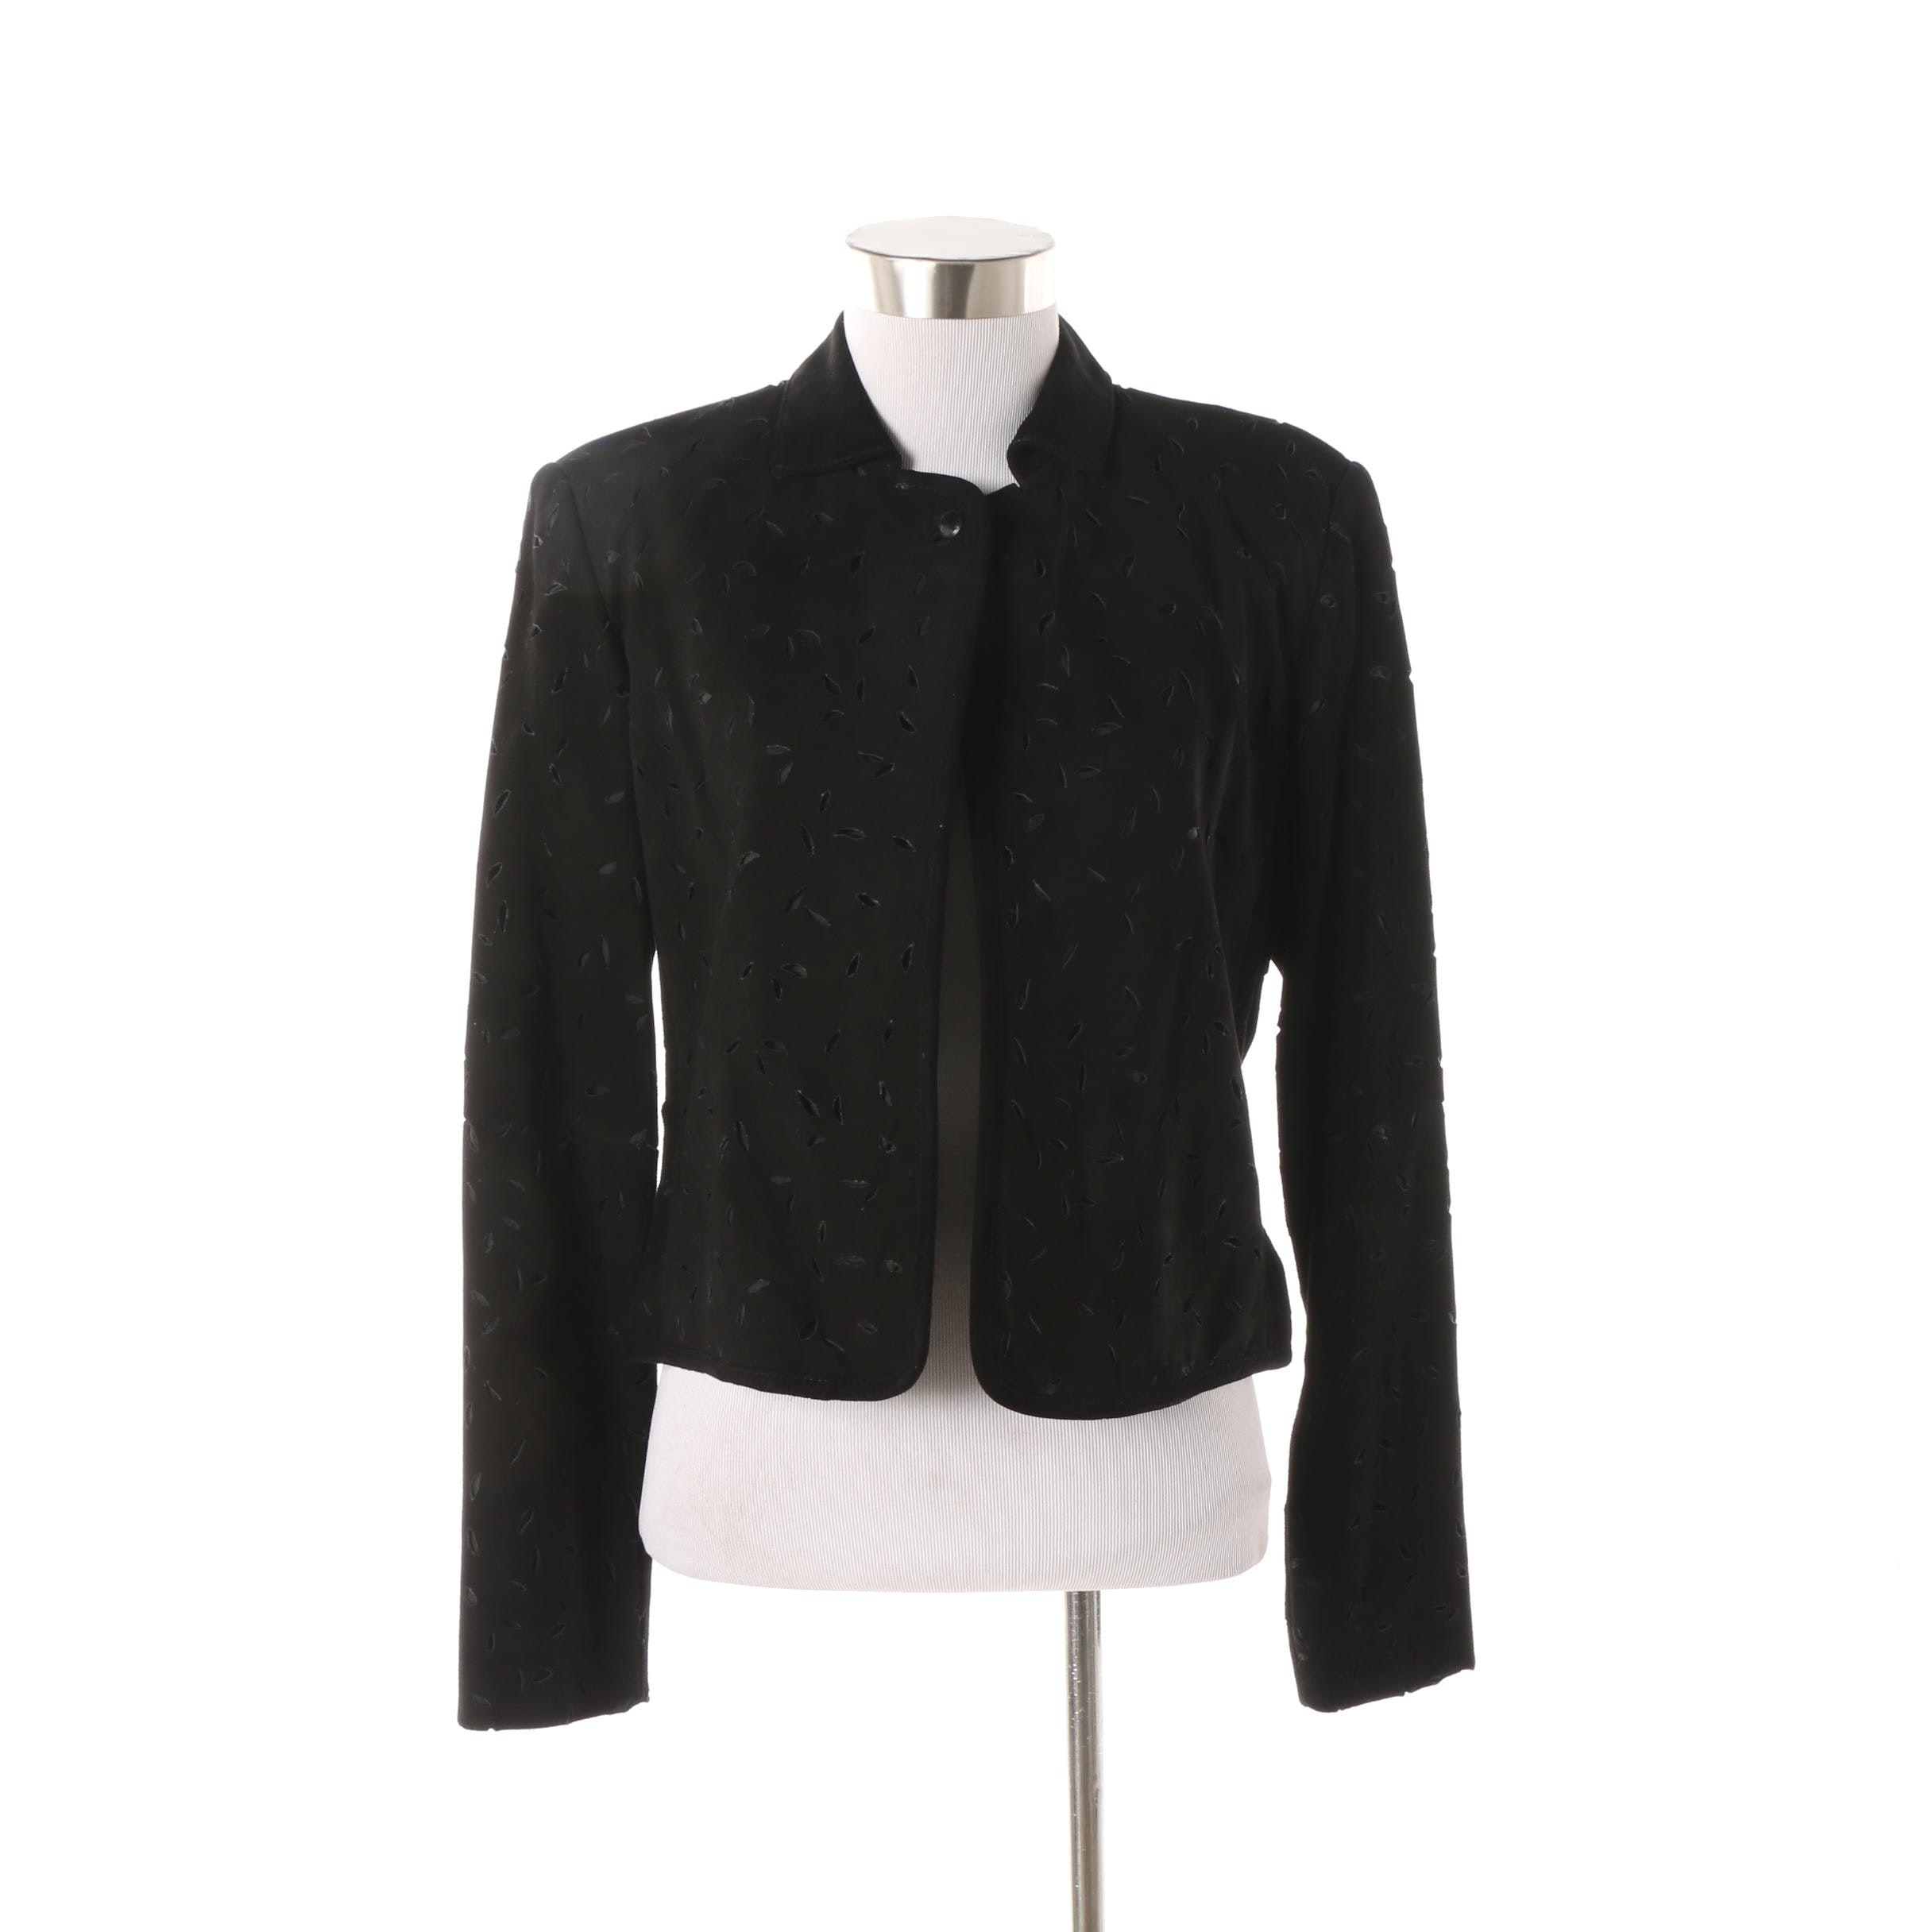 Women's Worth Black Suede Laser Cut Jacket